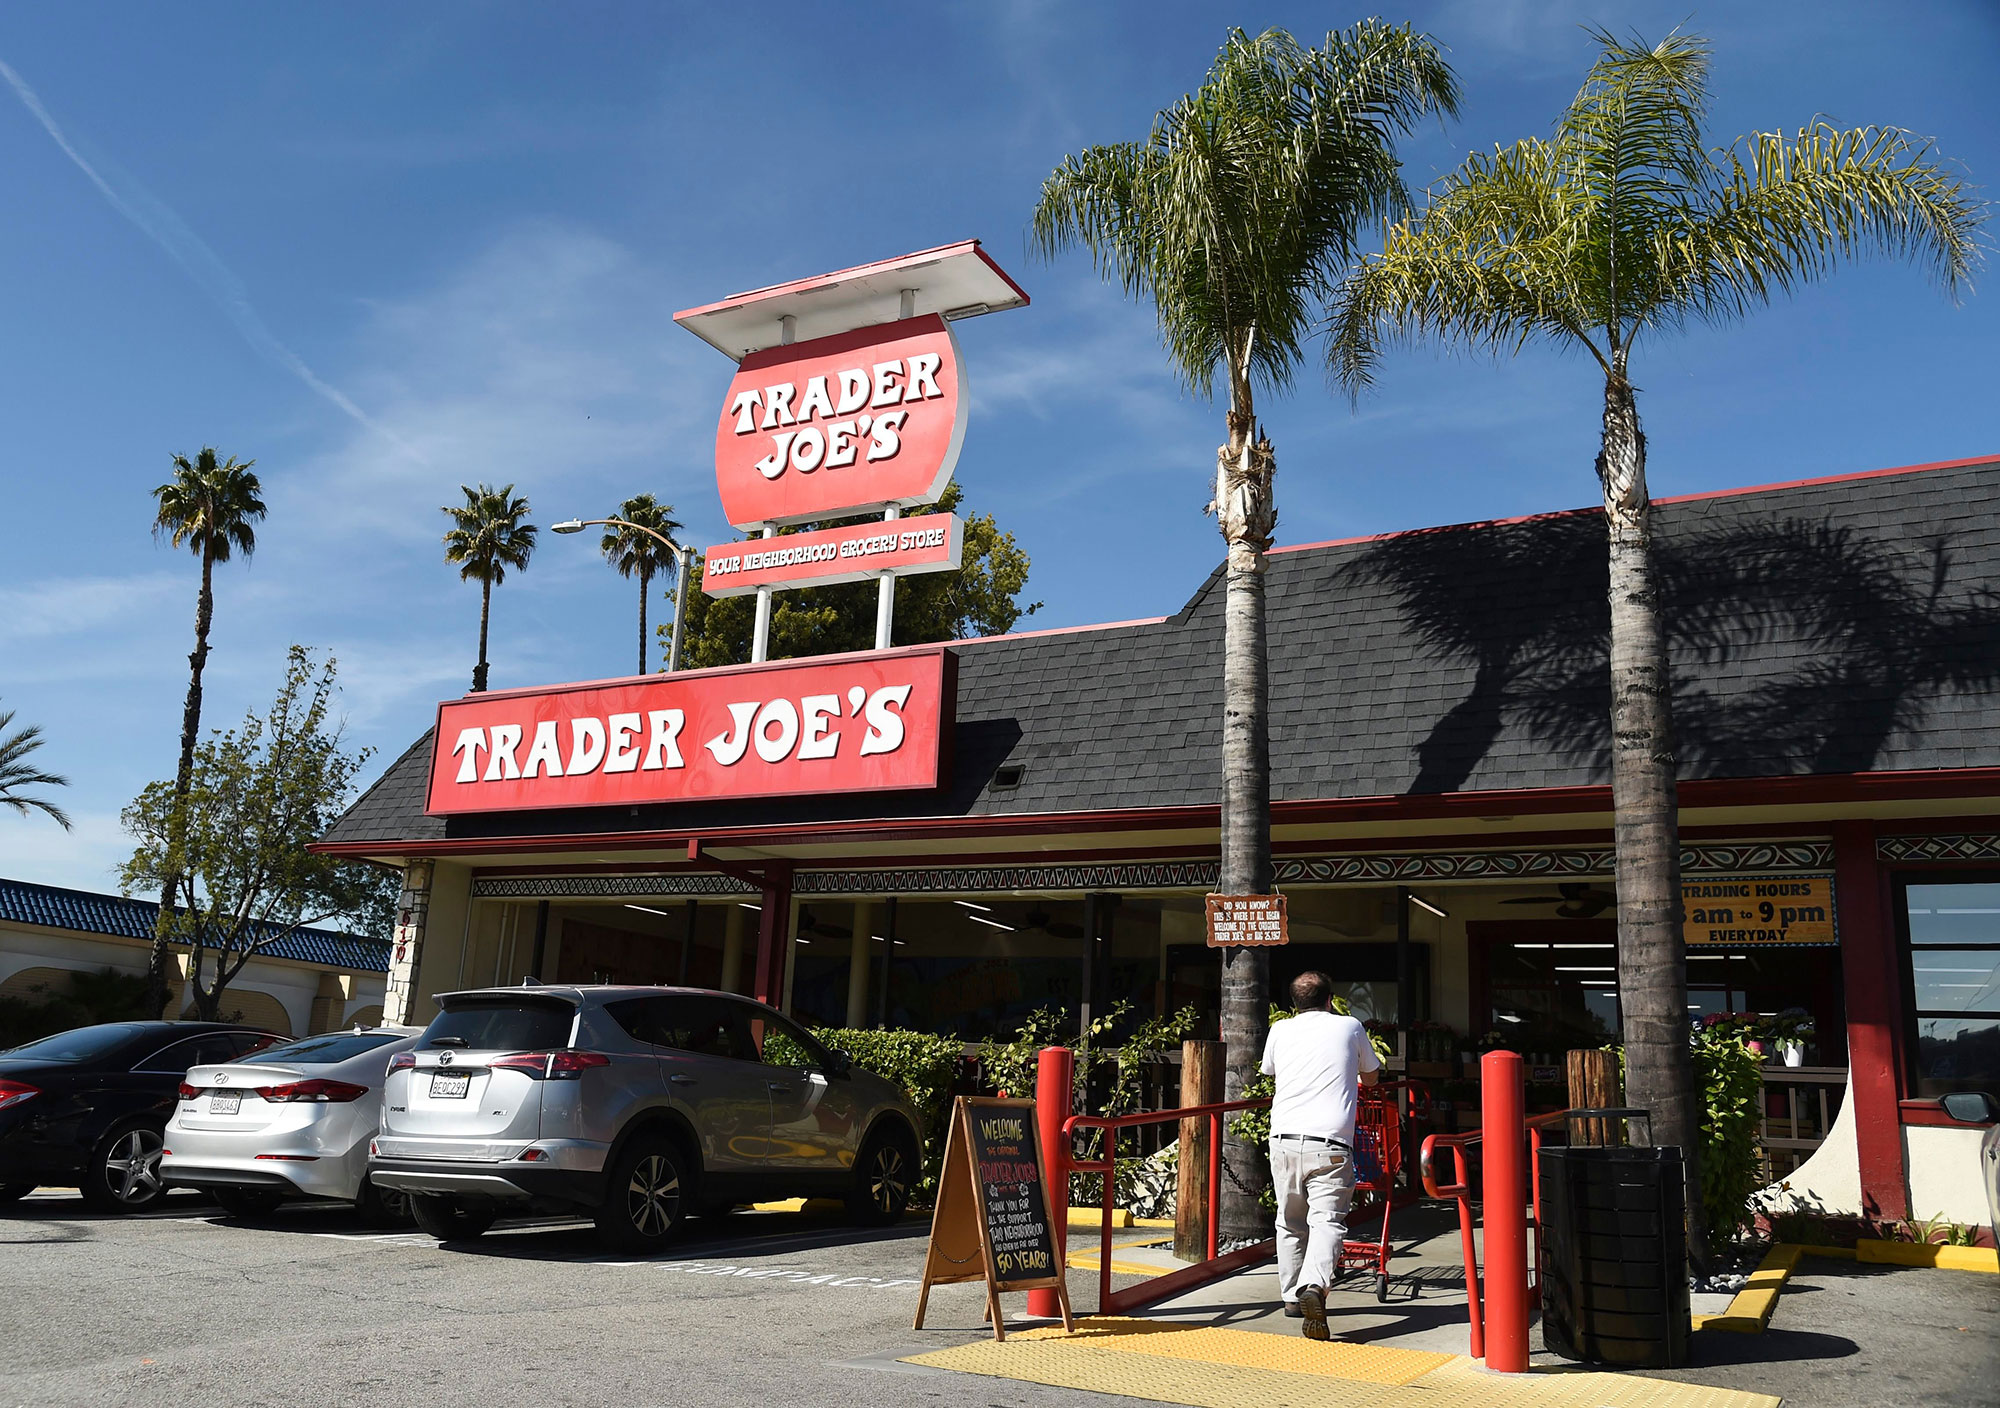 Trader Joe's Founder Joe Coulombe Dies at 89: 'He Was a Brilliant Thinker'